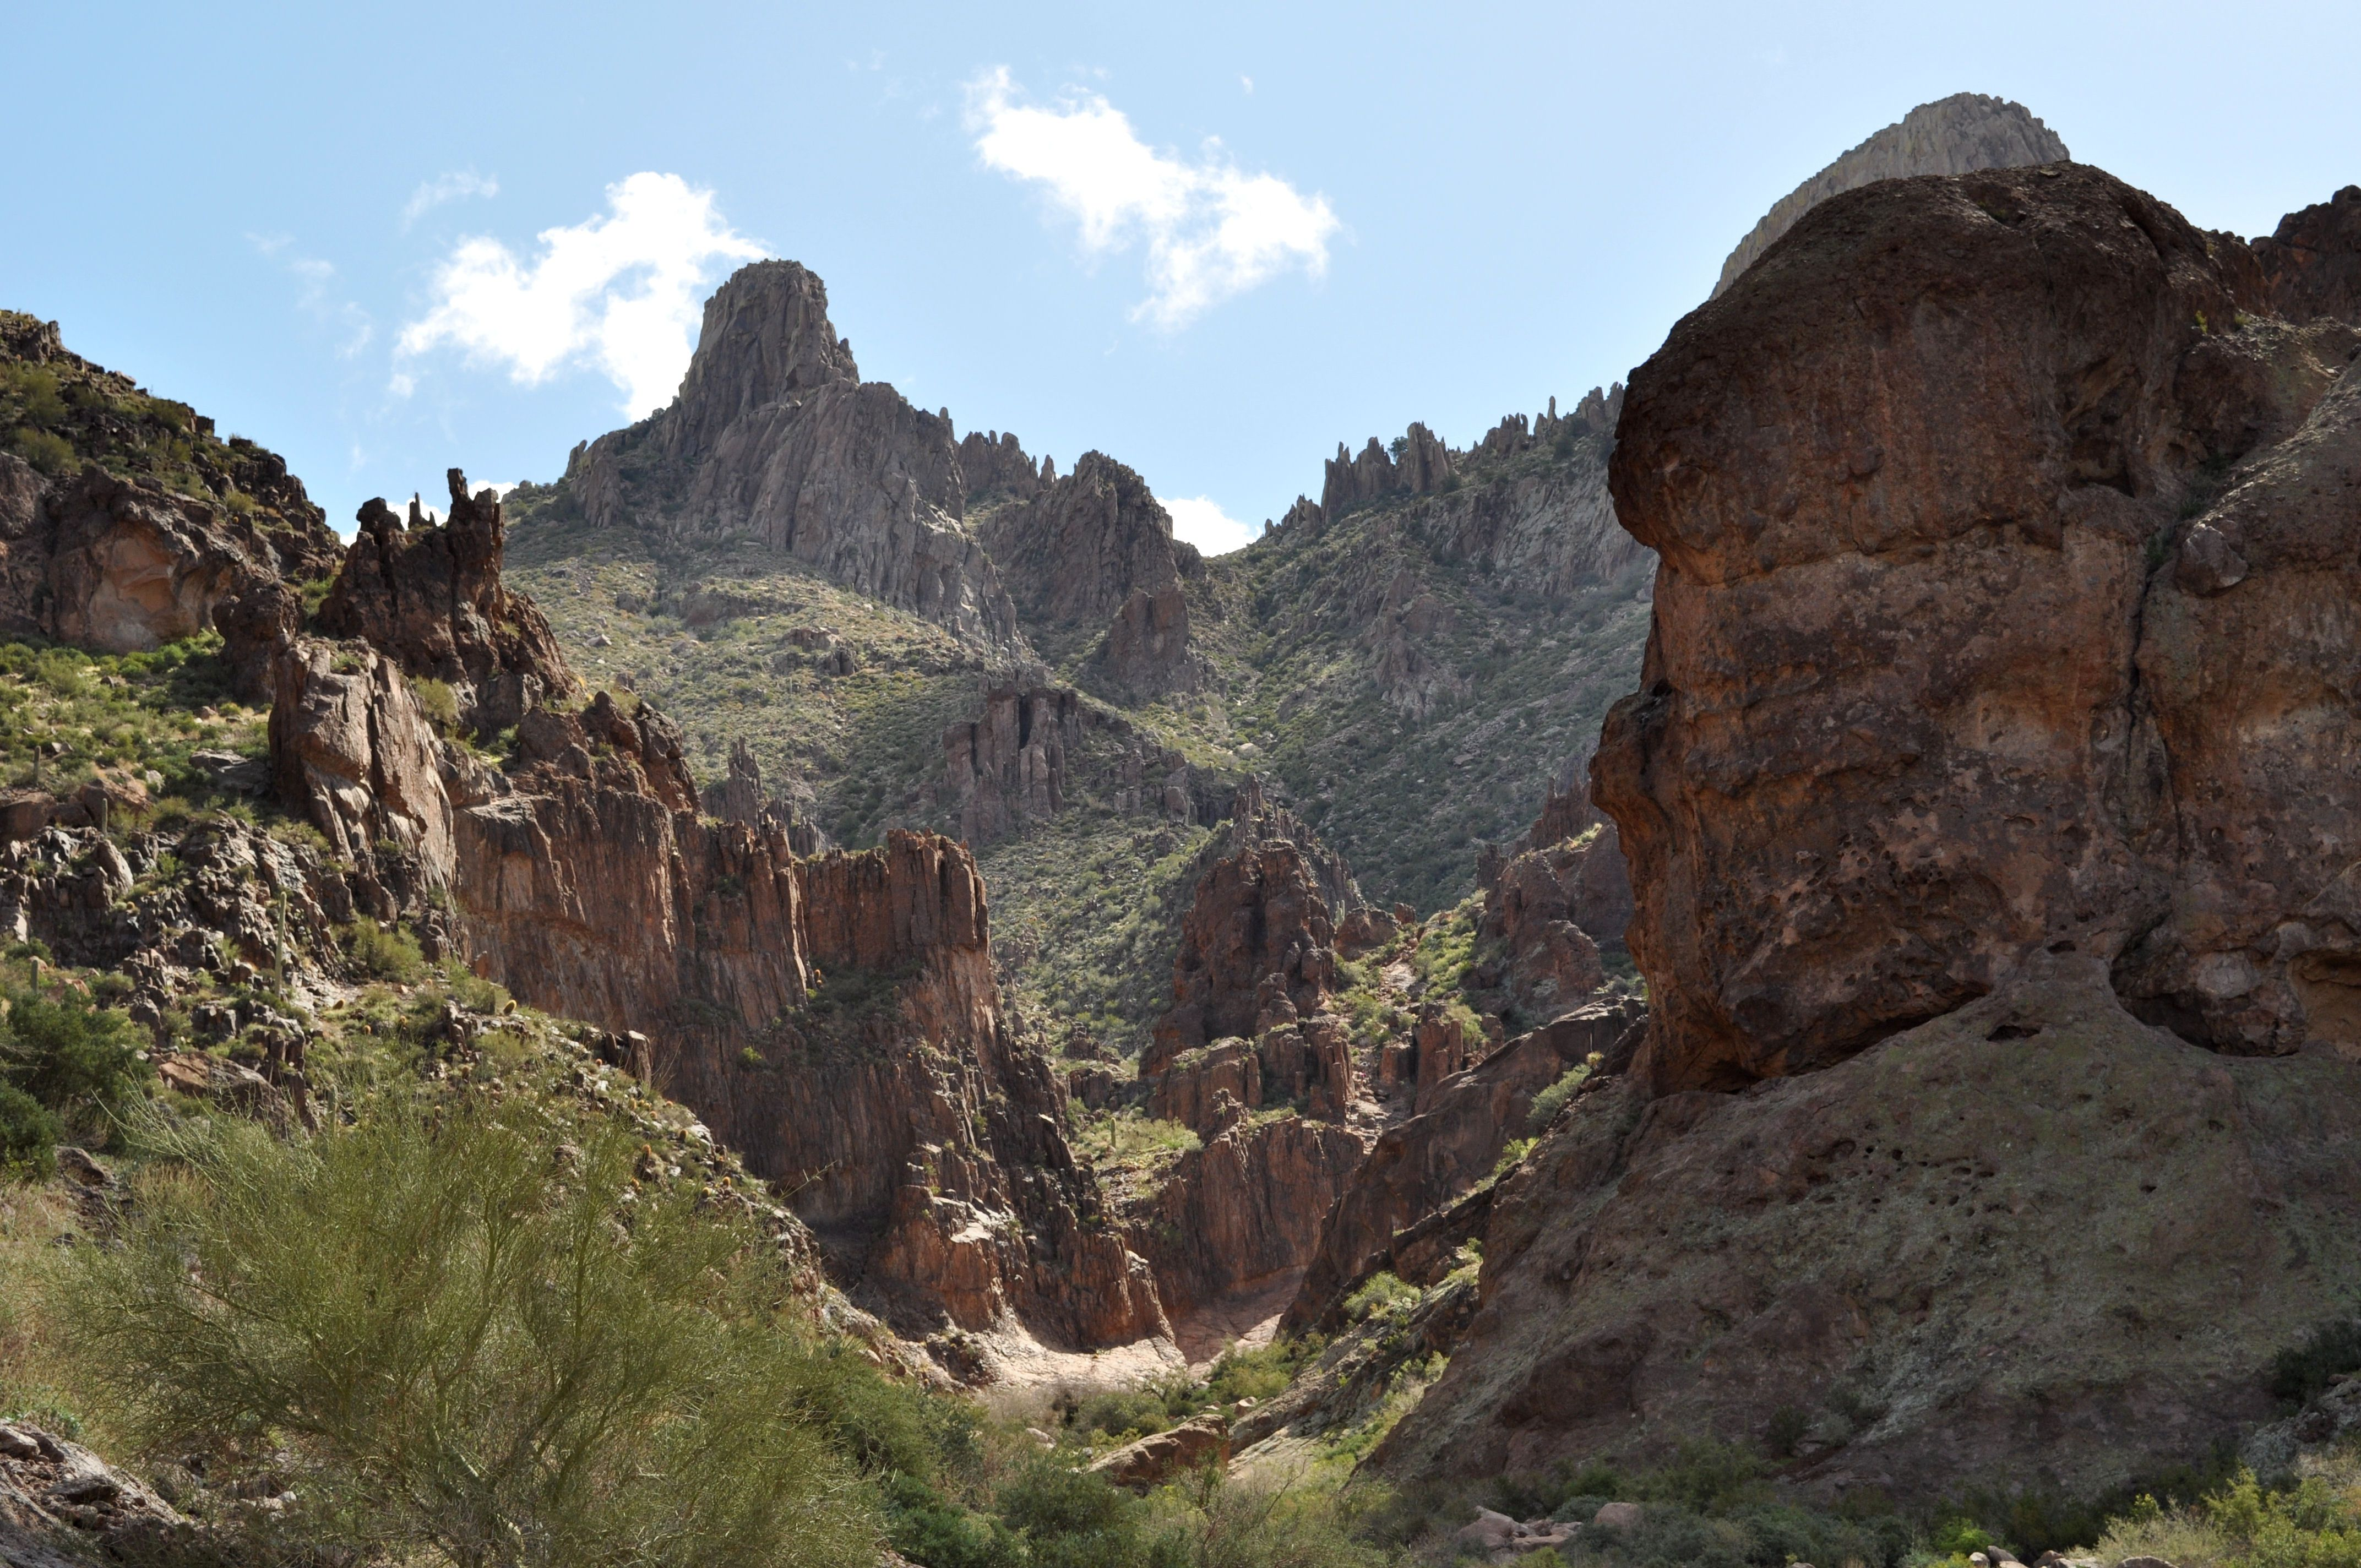 Hiking in the Superstition Mountains...... Cheyenne Kane